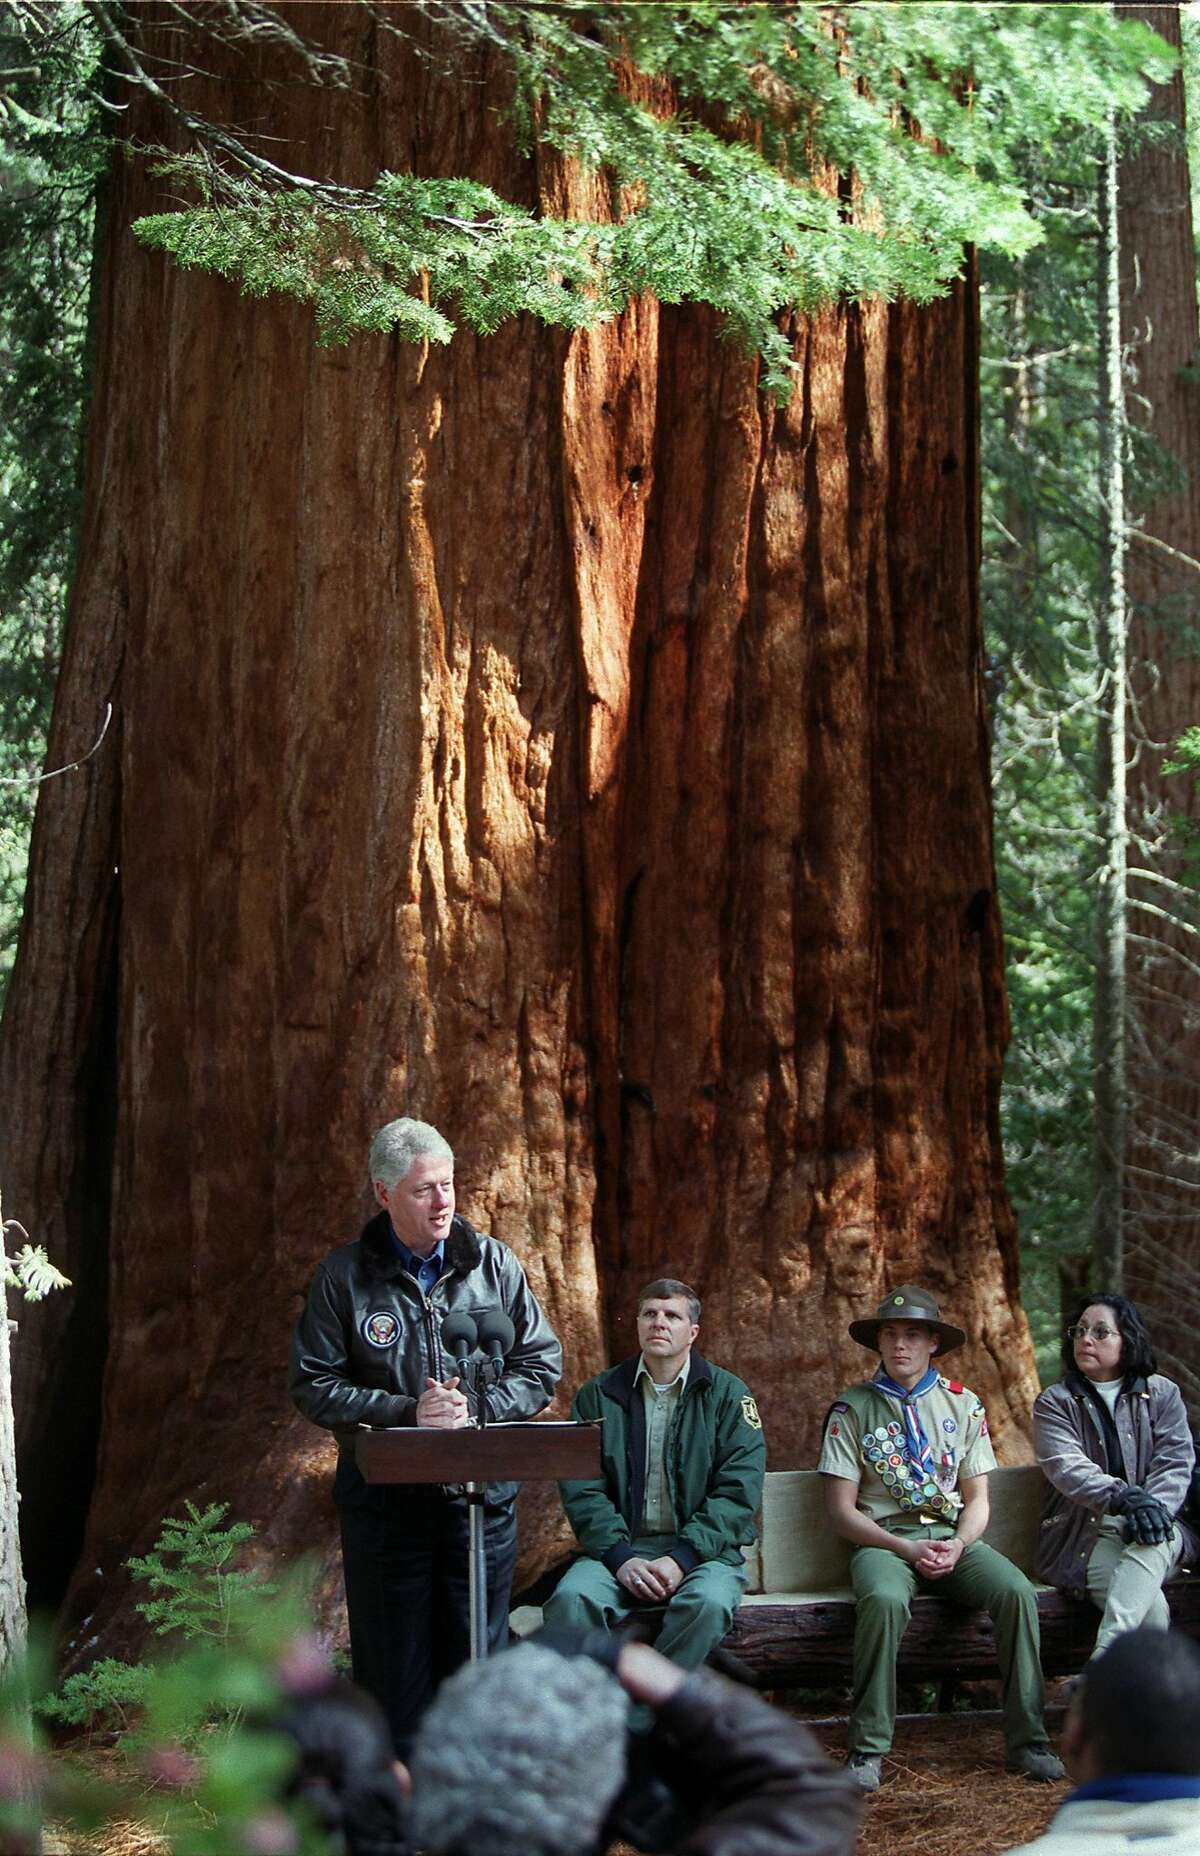 President Clinton addresses a small crowd near the Trail of 100 Giants in Sequoia National Forest, April 15, 2000. (AP Photo/Bakersfield Californian, Henry A. Barrios, File)